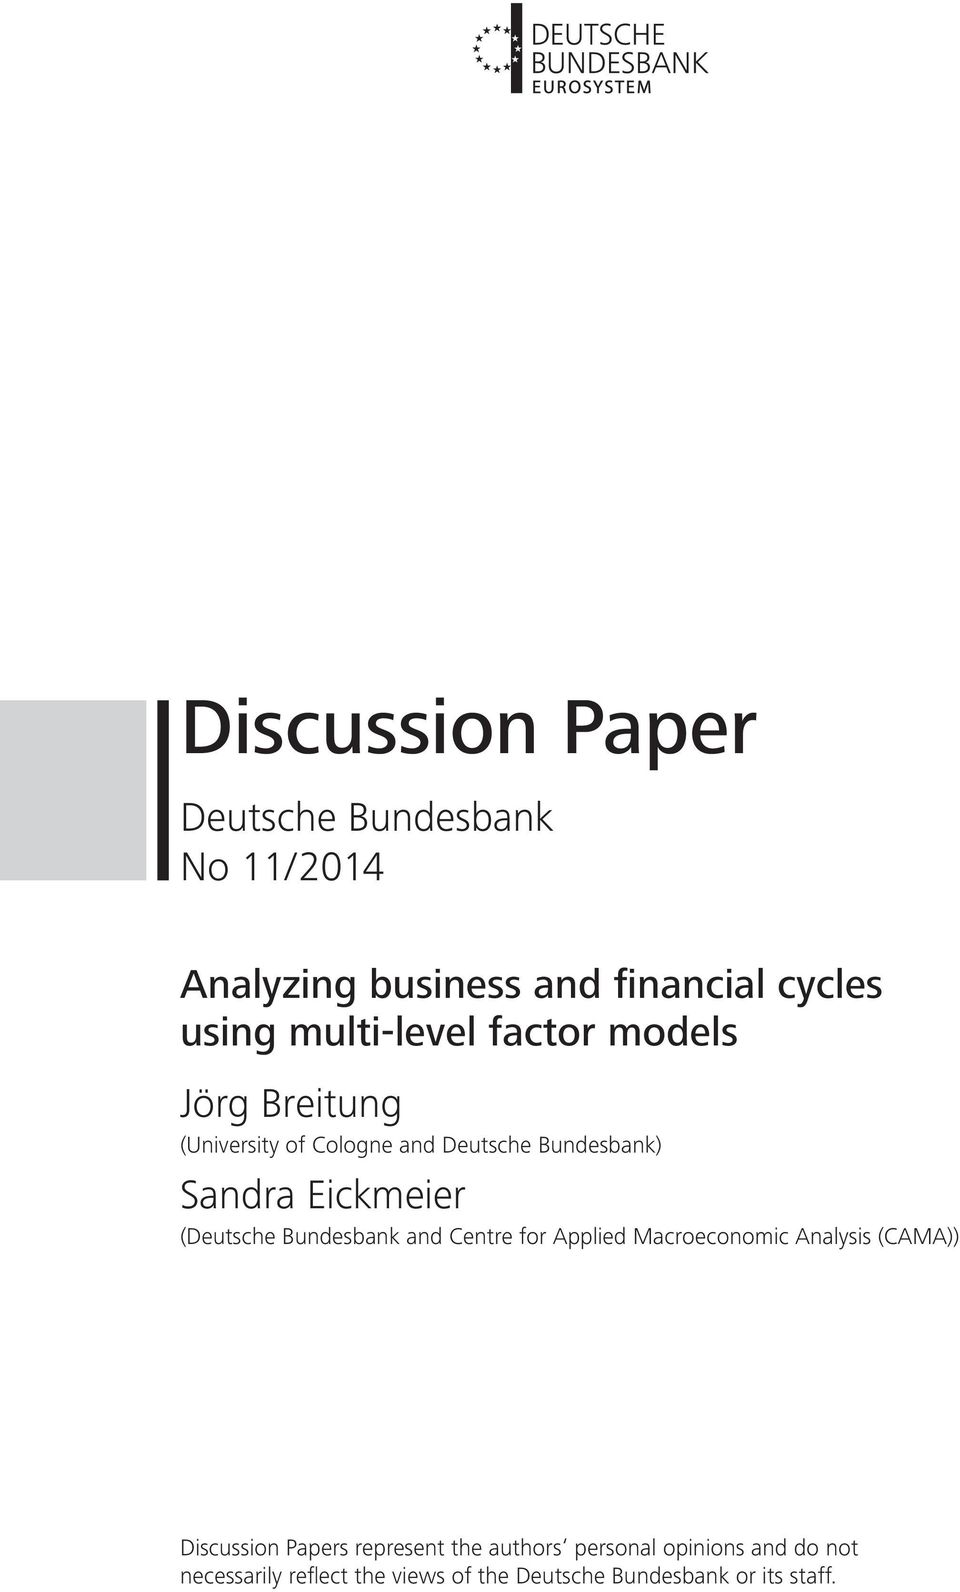 Eickmeier (Deutsche Bundesbank and Centre for Applied Macroeconomic Analysis (CAMA)) Discussion Papers